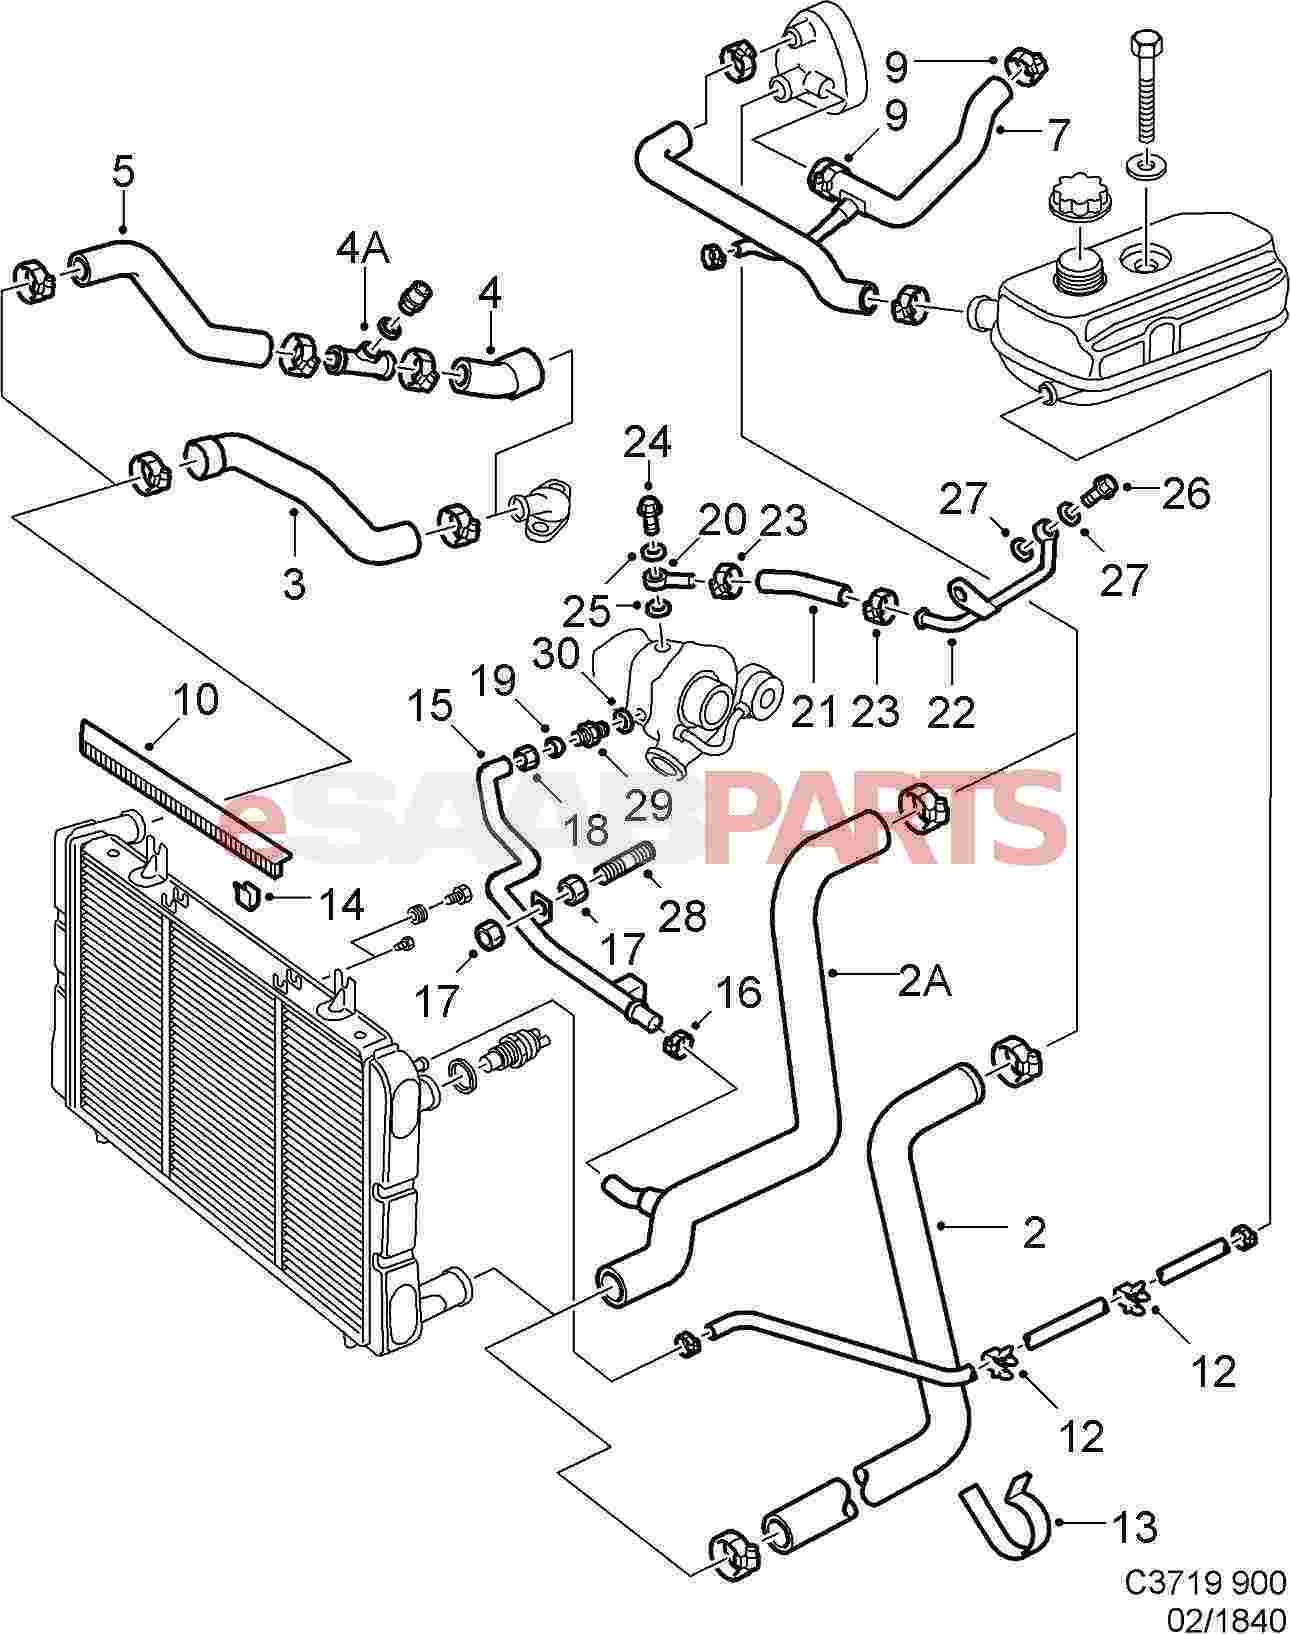 hight resolution of volkswagen engine cooling system diagram wiring diagrams konsult volkswagen engine cooling diagram wiring diagram query volkswagen